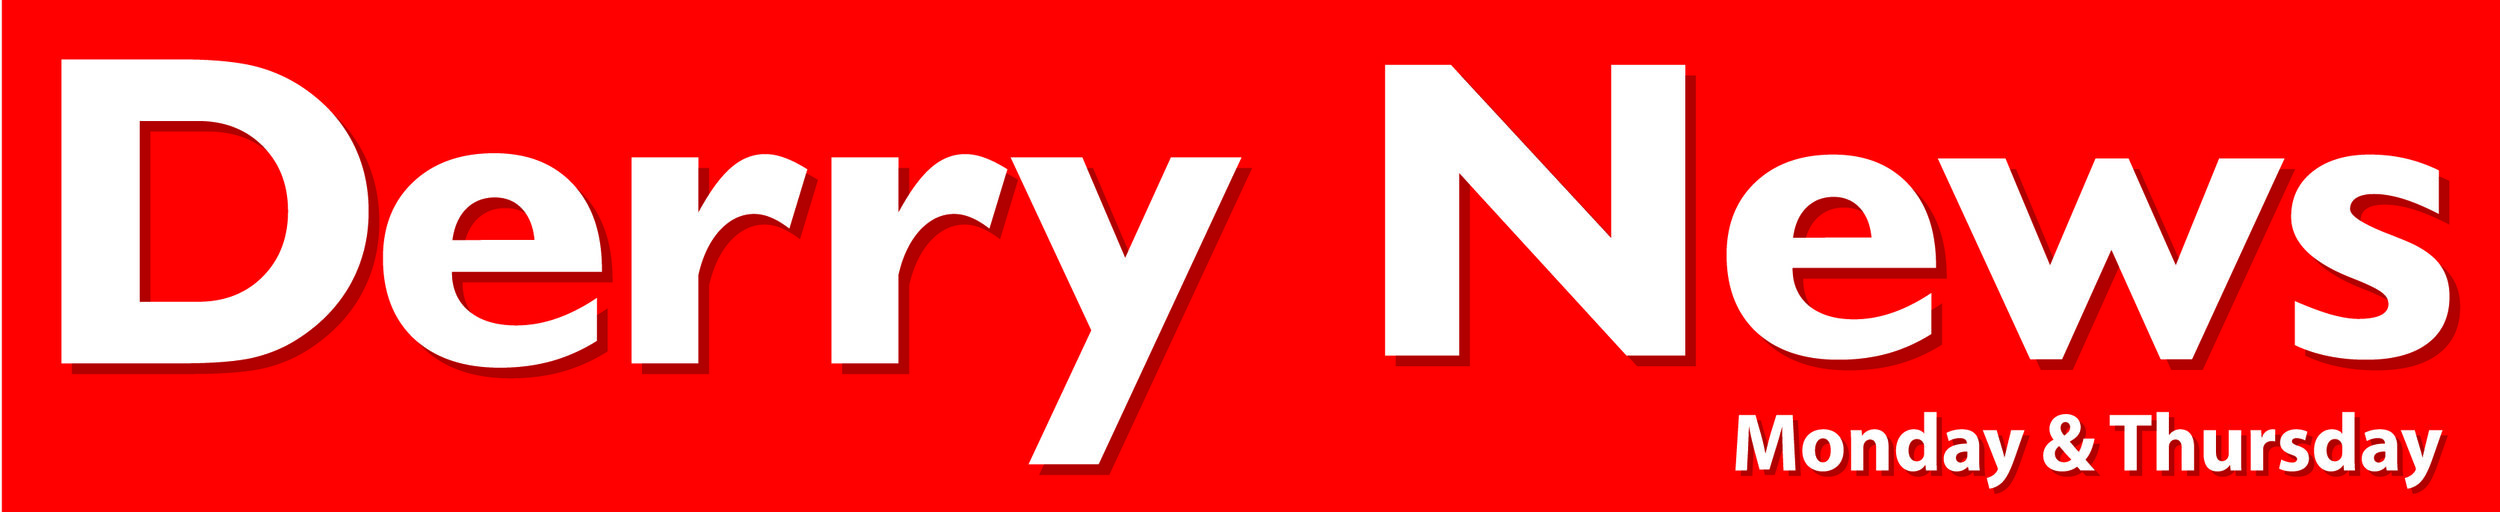 NEW-Derry-News-Monday-Thursday-Logo.jpg